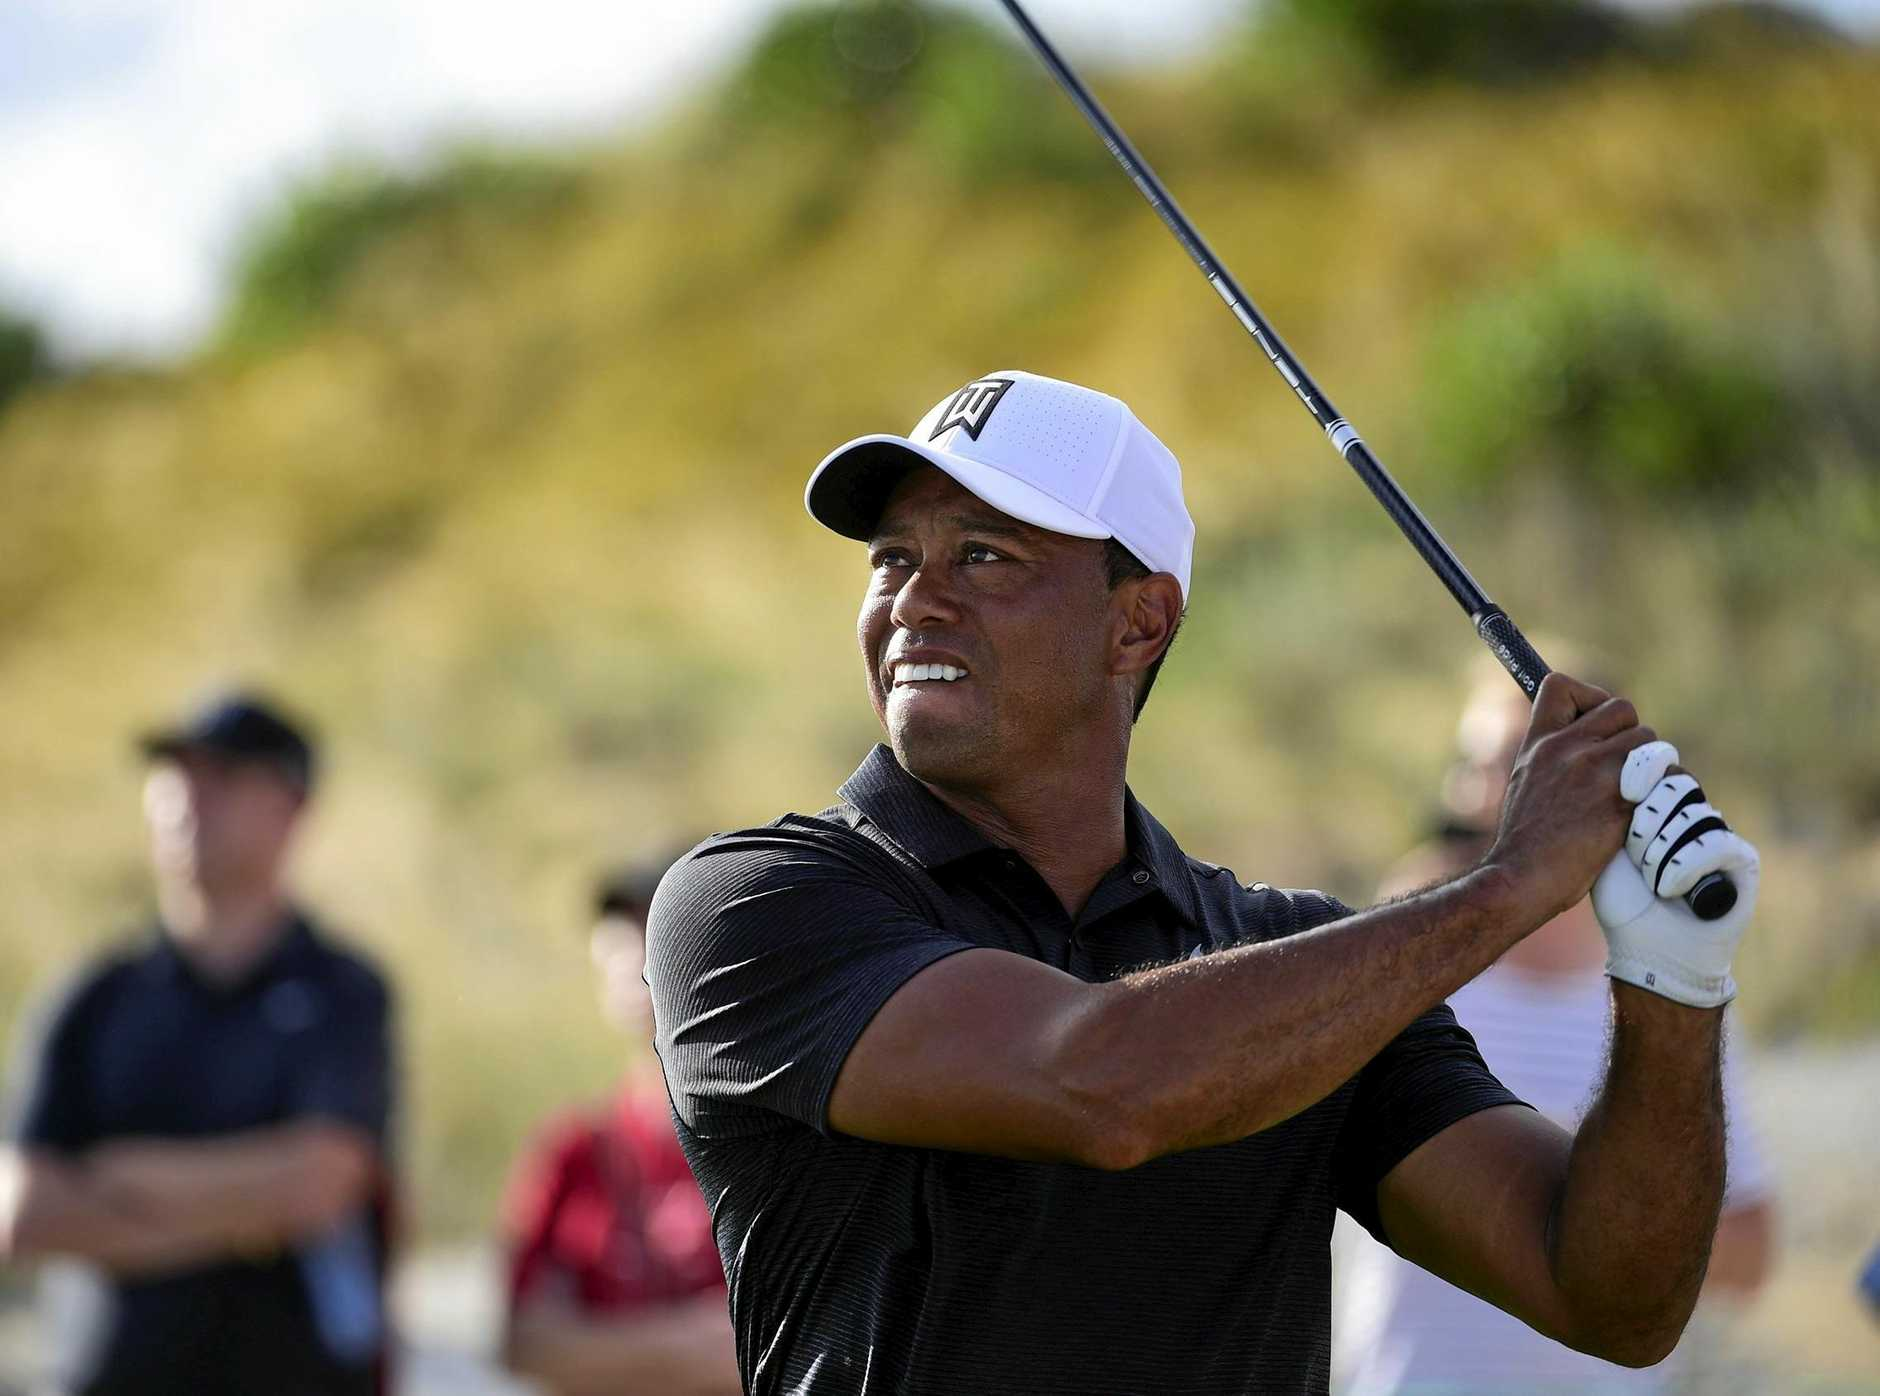 Tiger Woods tees off at the 16th in the first round of the Hero World Challenge golf tournament at Albany Golf Club in Nassau, the Bahamas.